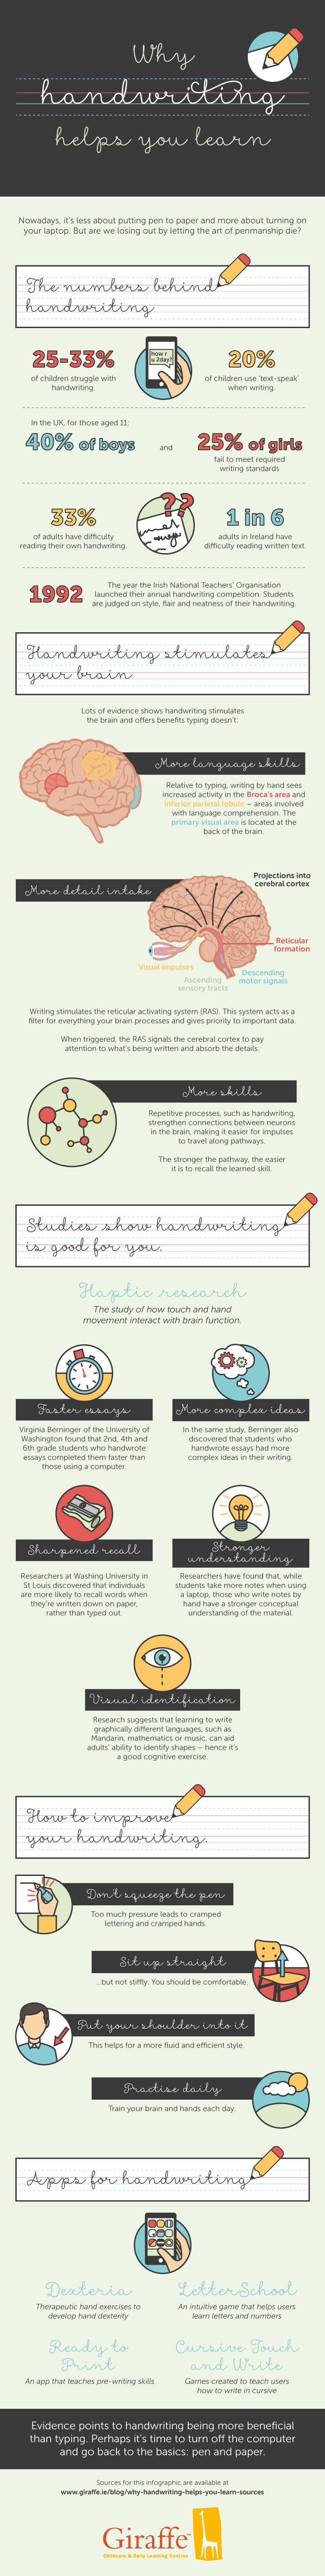 Why Handwriting Helps You Learn! Great Infographic